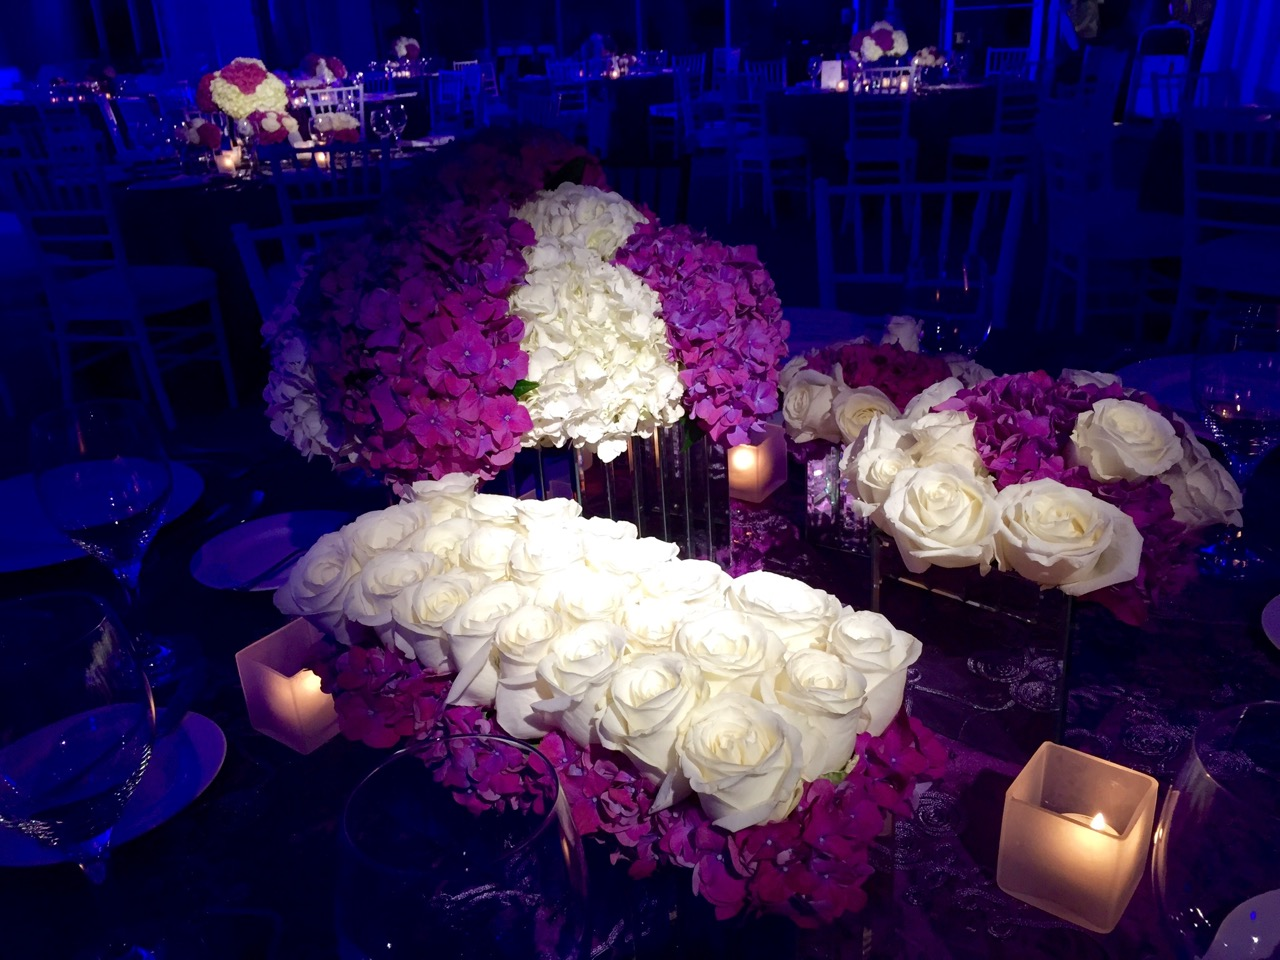 Eggsotic+Events+Lighting+and+Decor+Rentals+NJ+NYC+Event+Design++-+11.jpg